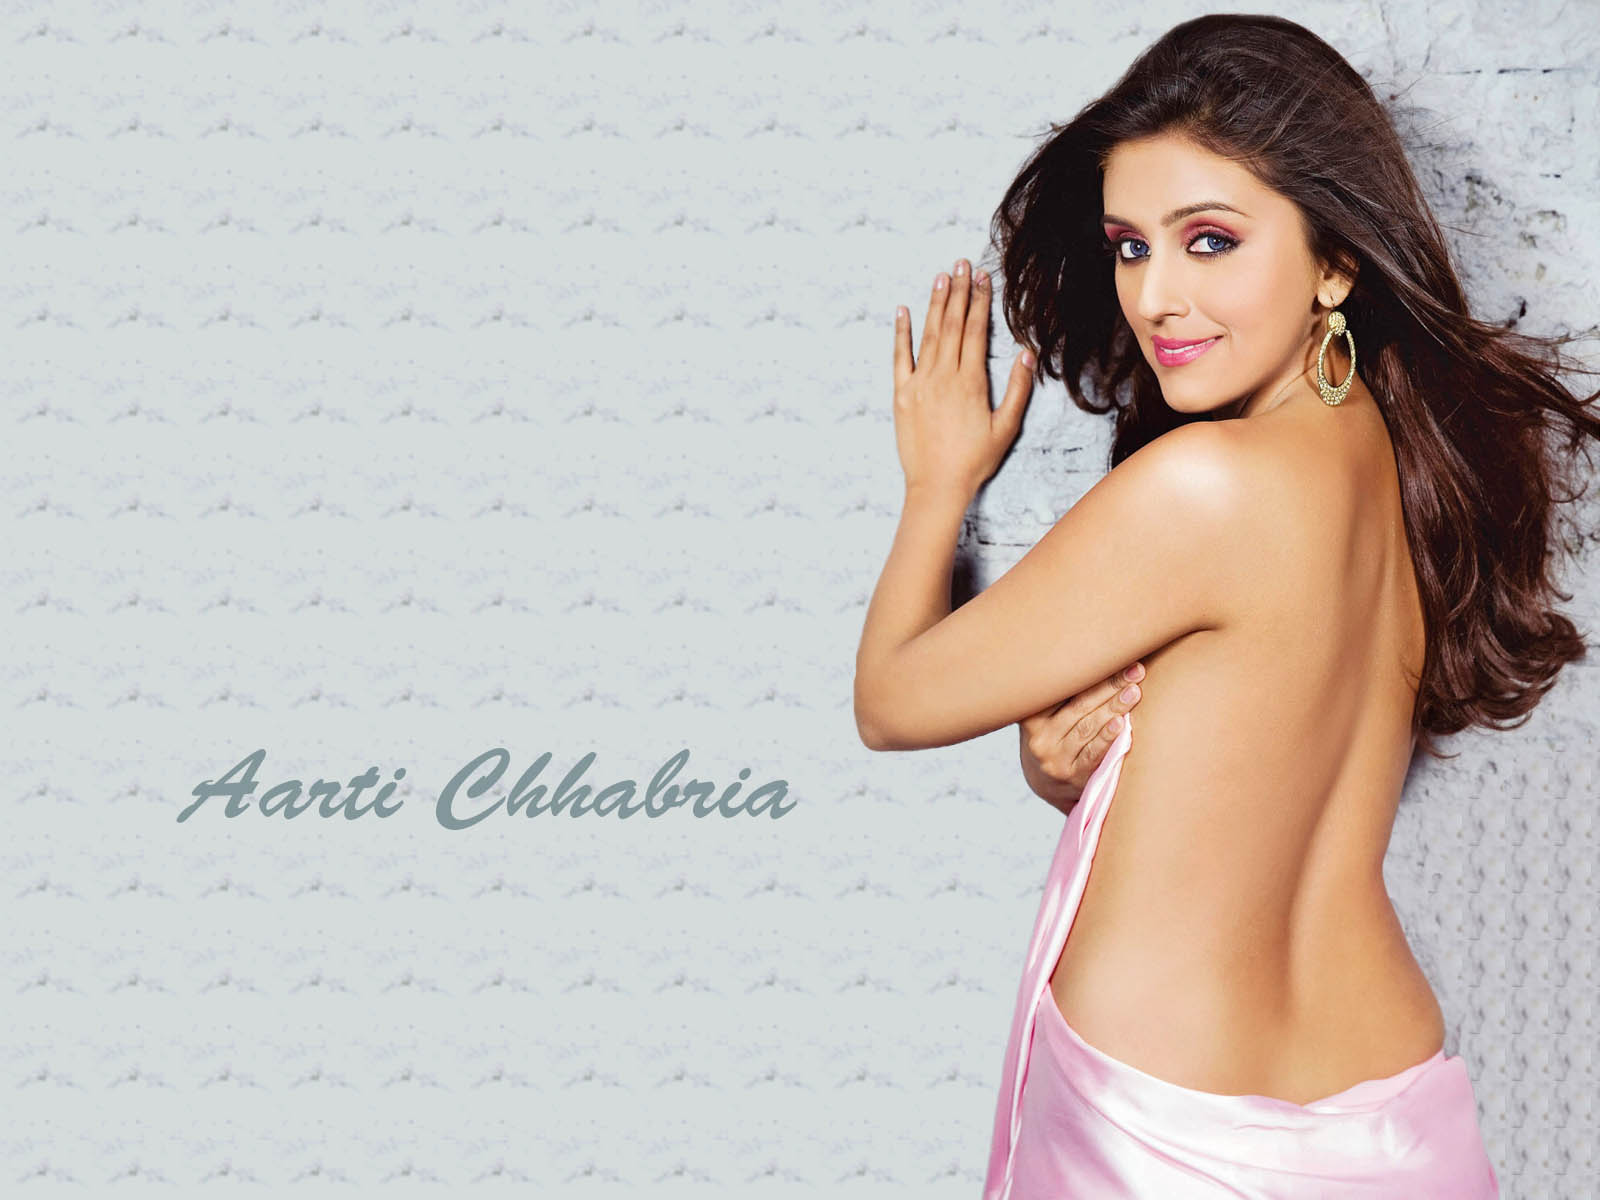 Bollywood Actress Aarti Chhabria In Hot Clothes Daily -6007